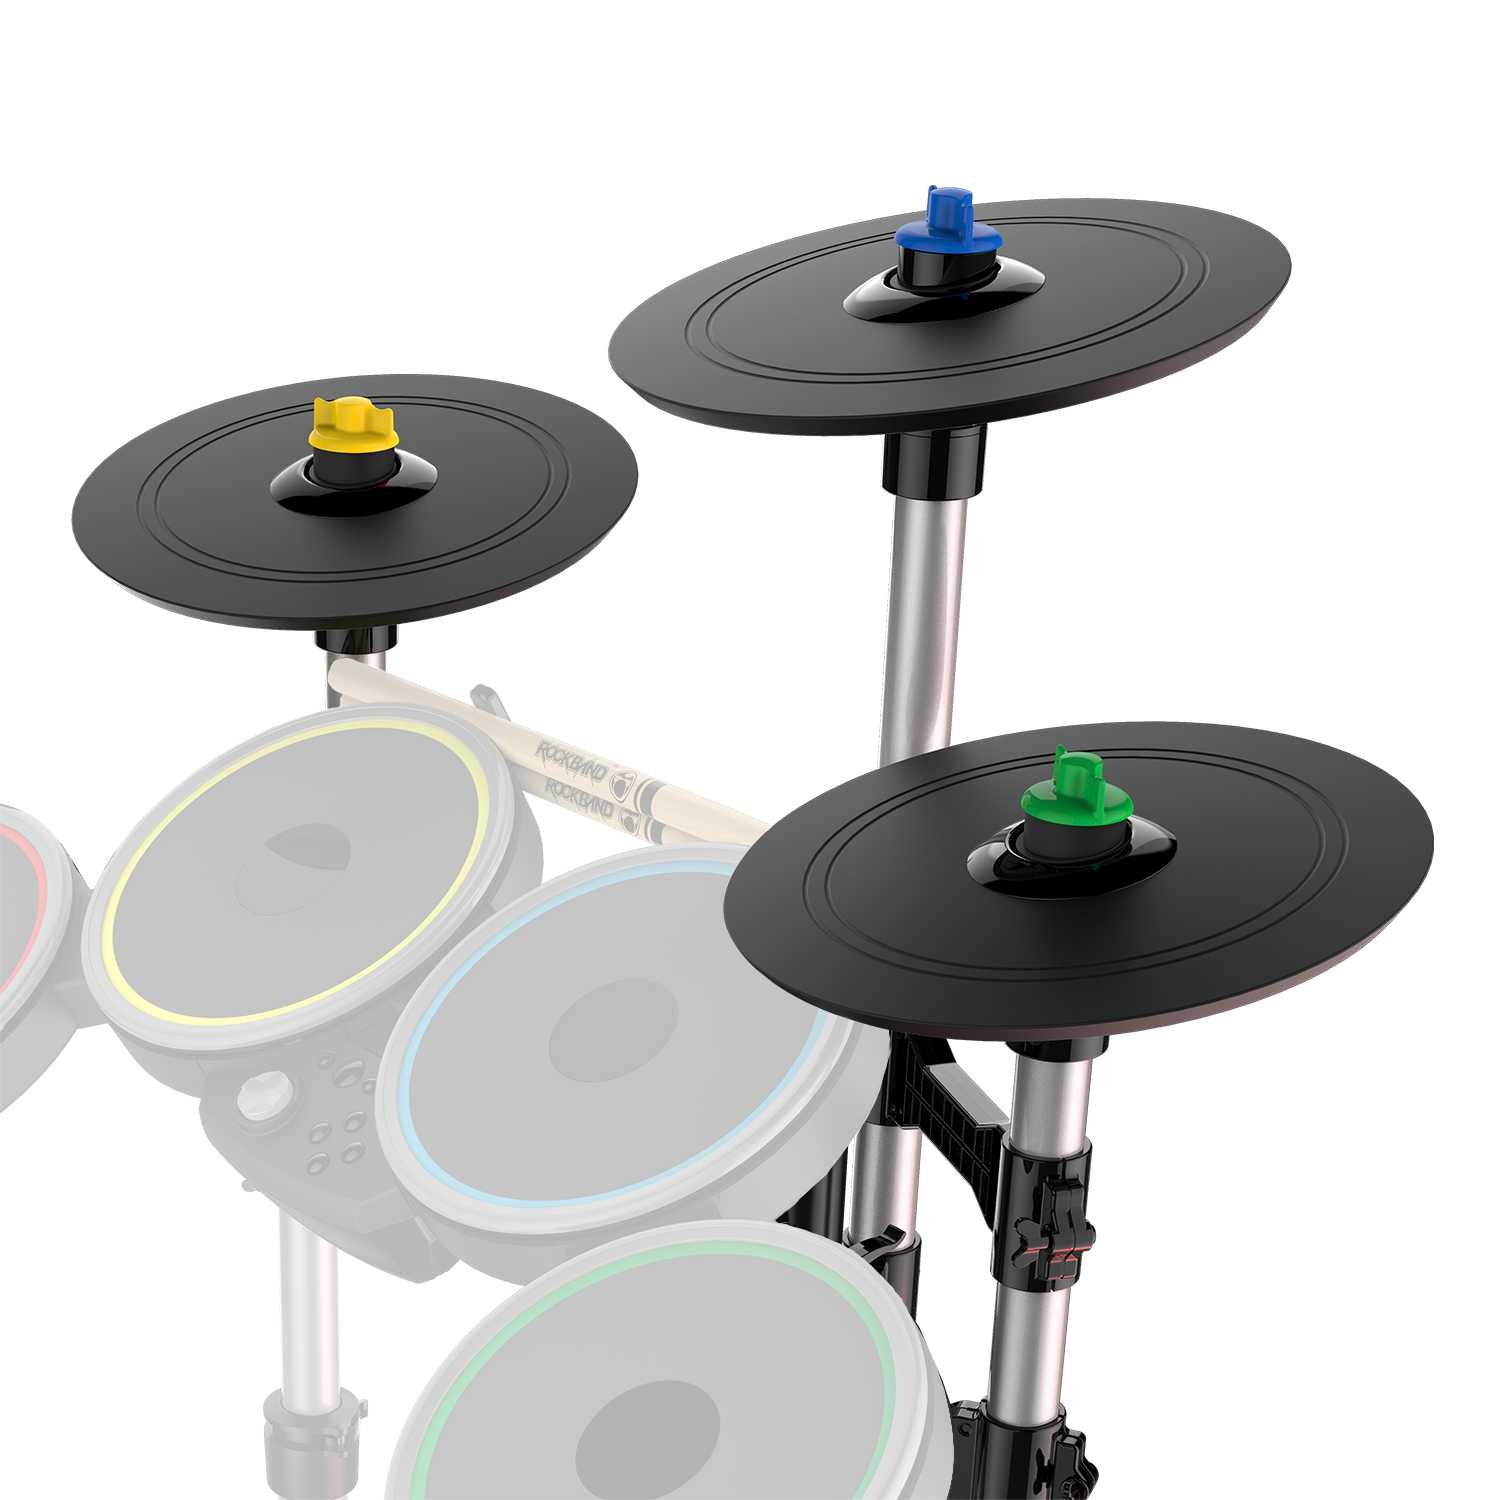 Rock Band 4 Pro-Cymbals Expansion Drum Kit